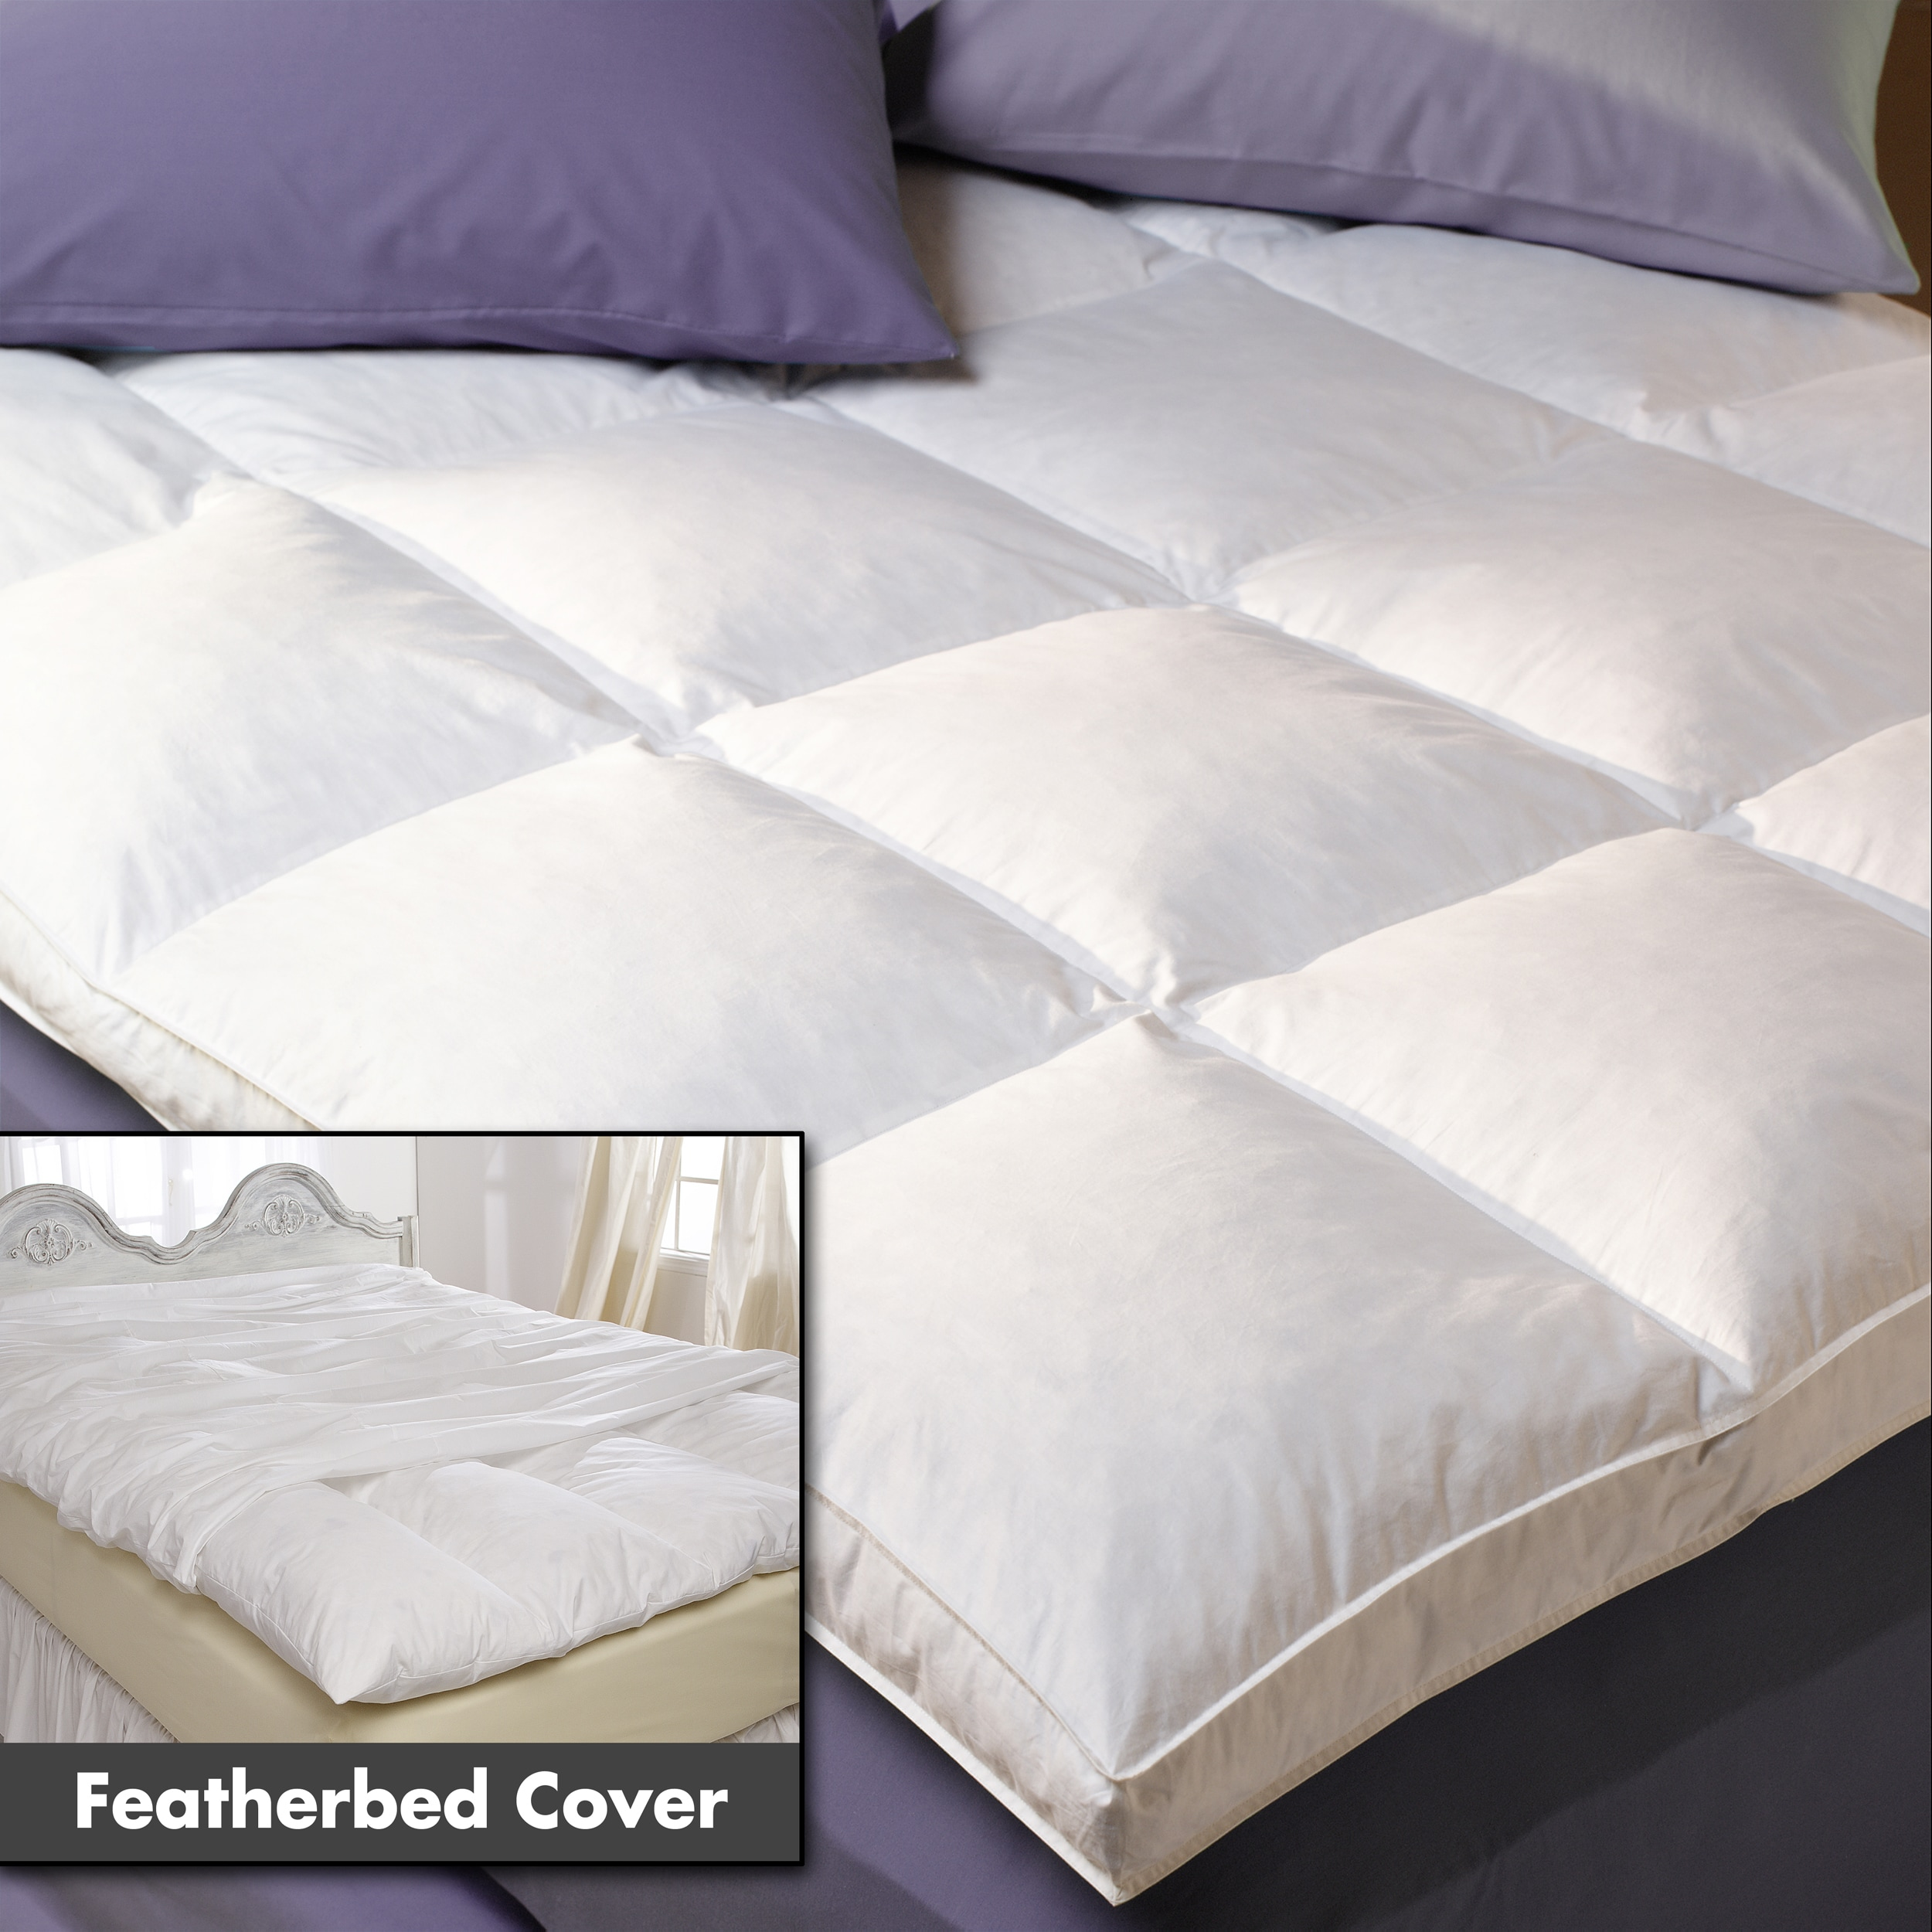 Hotel Grand Lujoso Downtop deflector Box 5 pulgadas Fuelle Featherbed